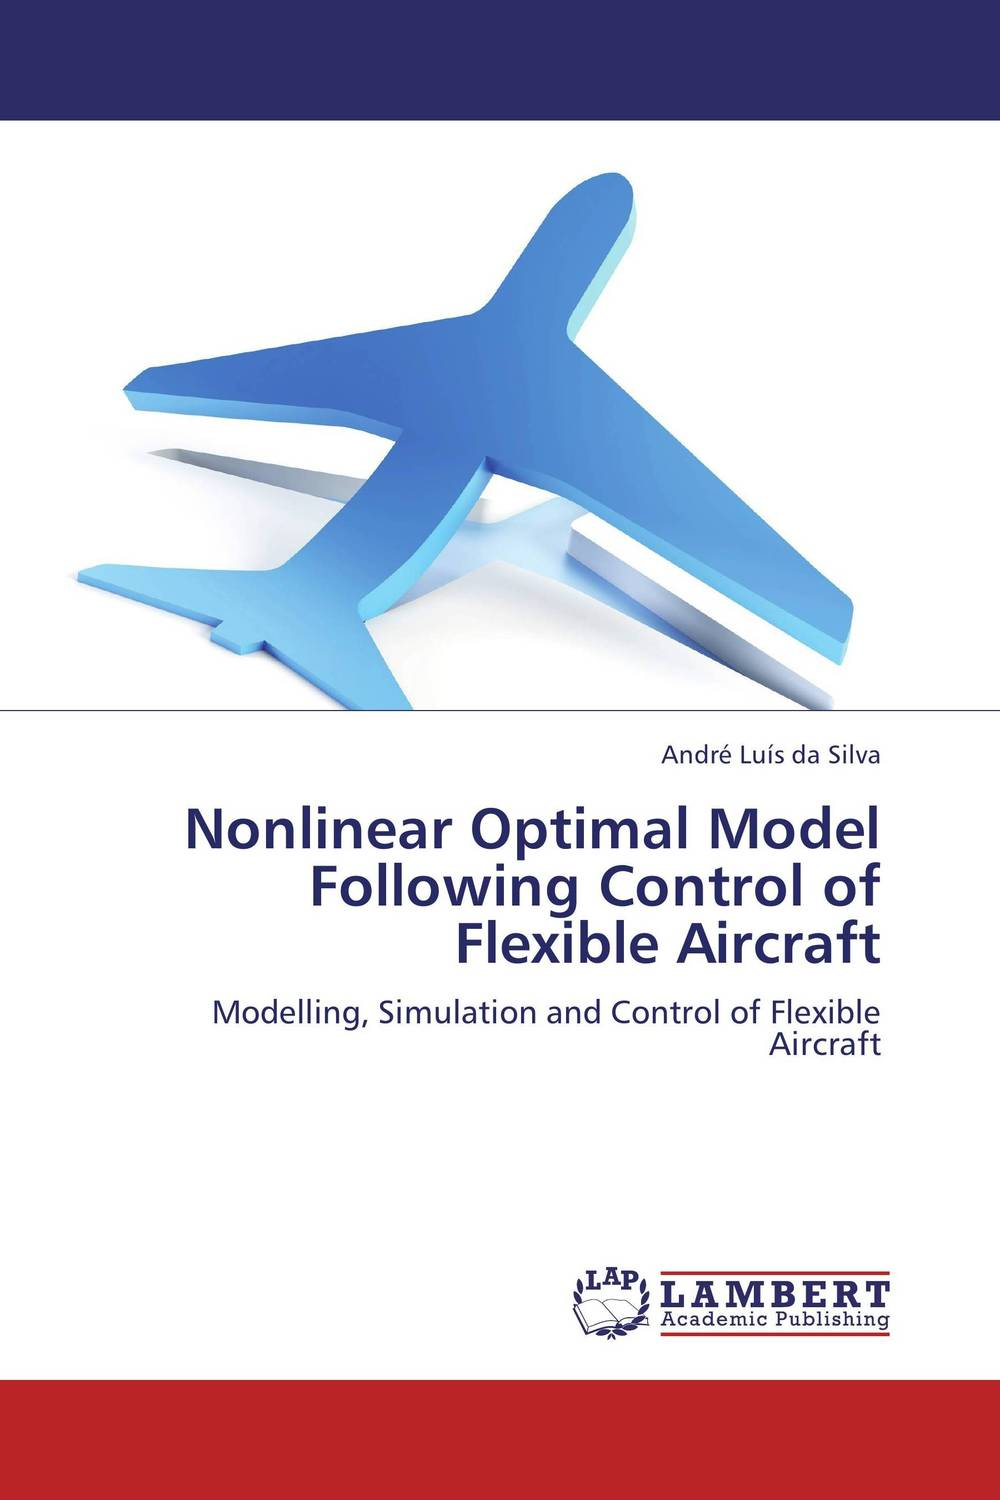 Nonlinear Optimal Model Following Control of Flexible Aircraft